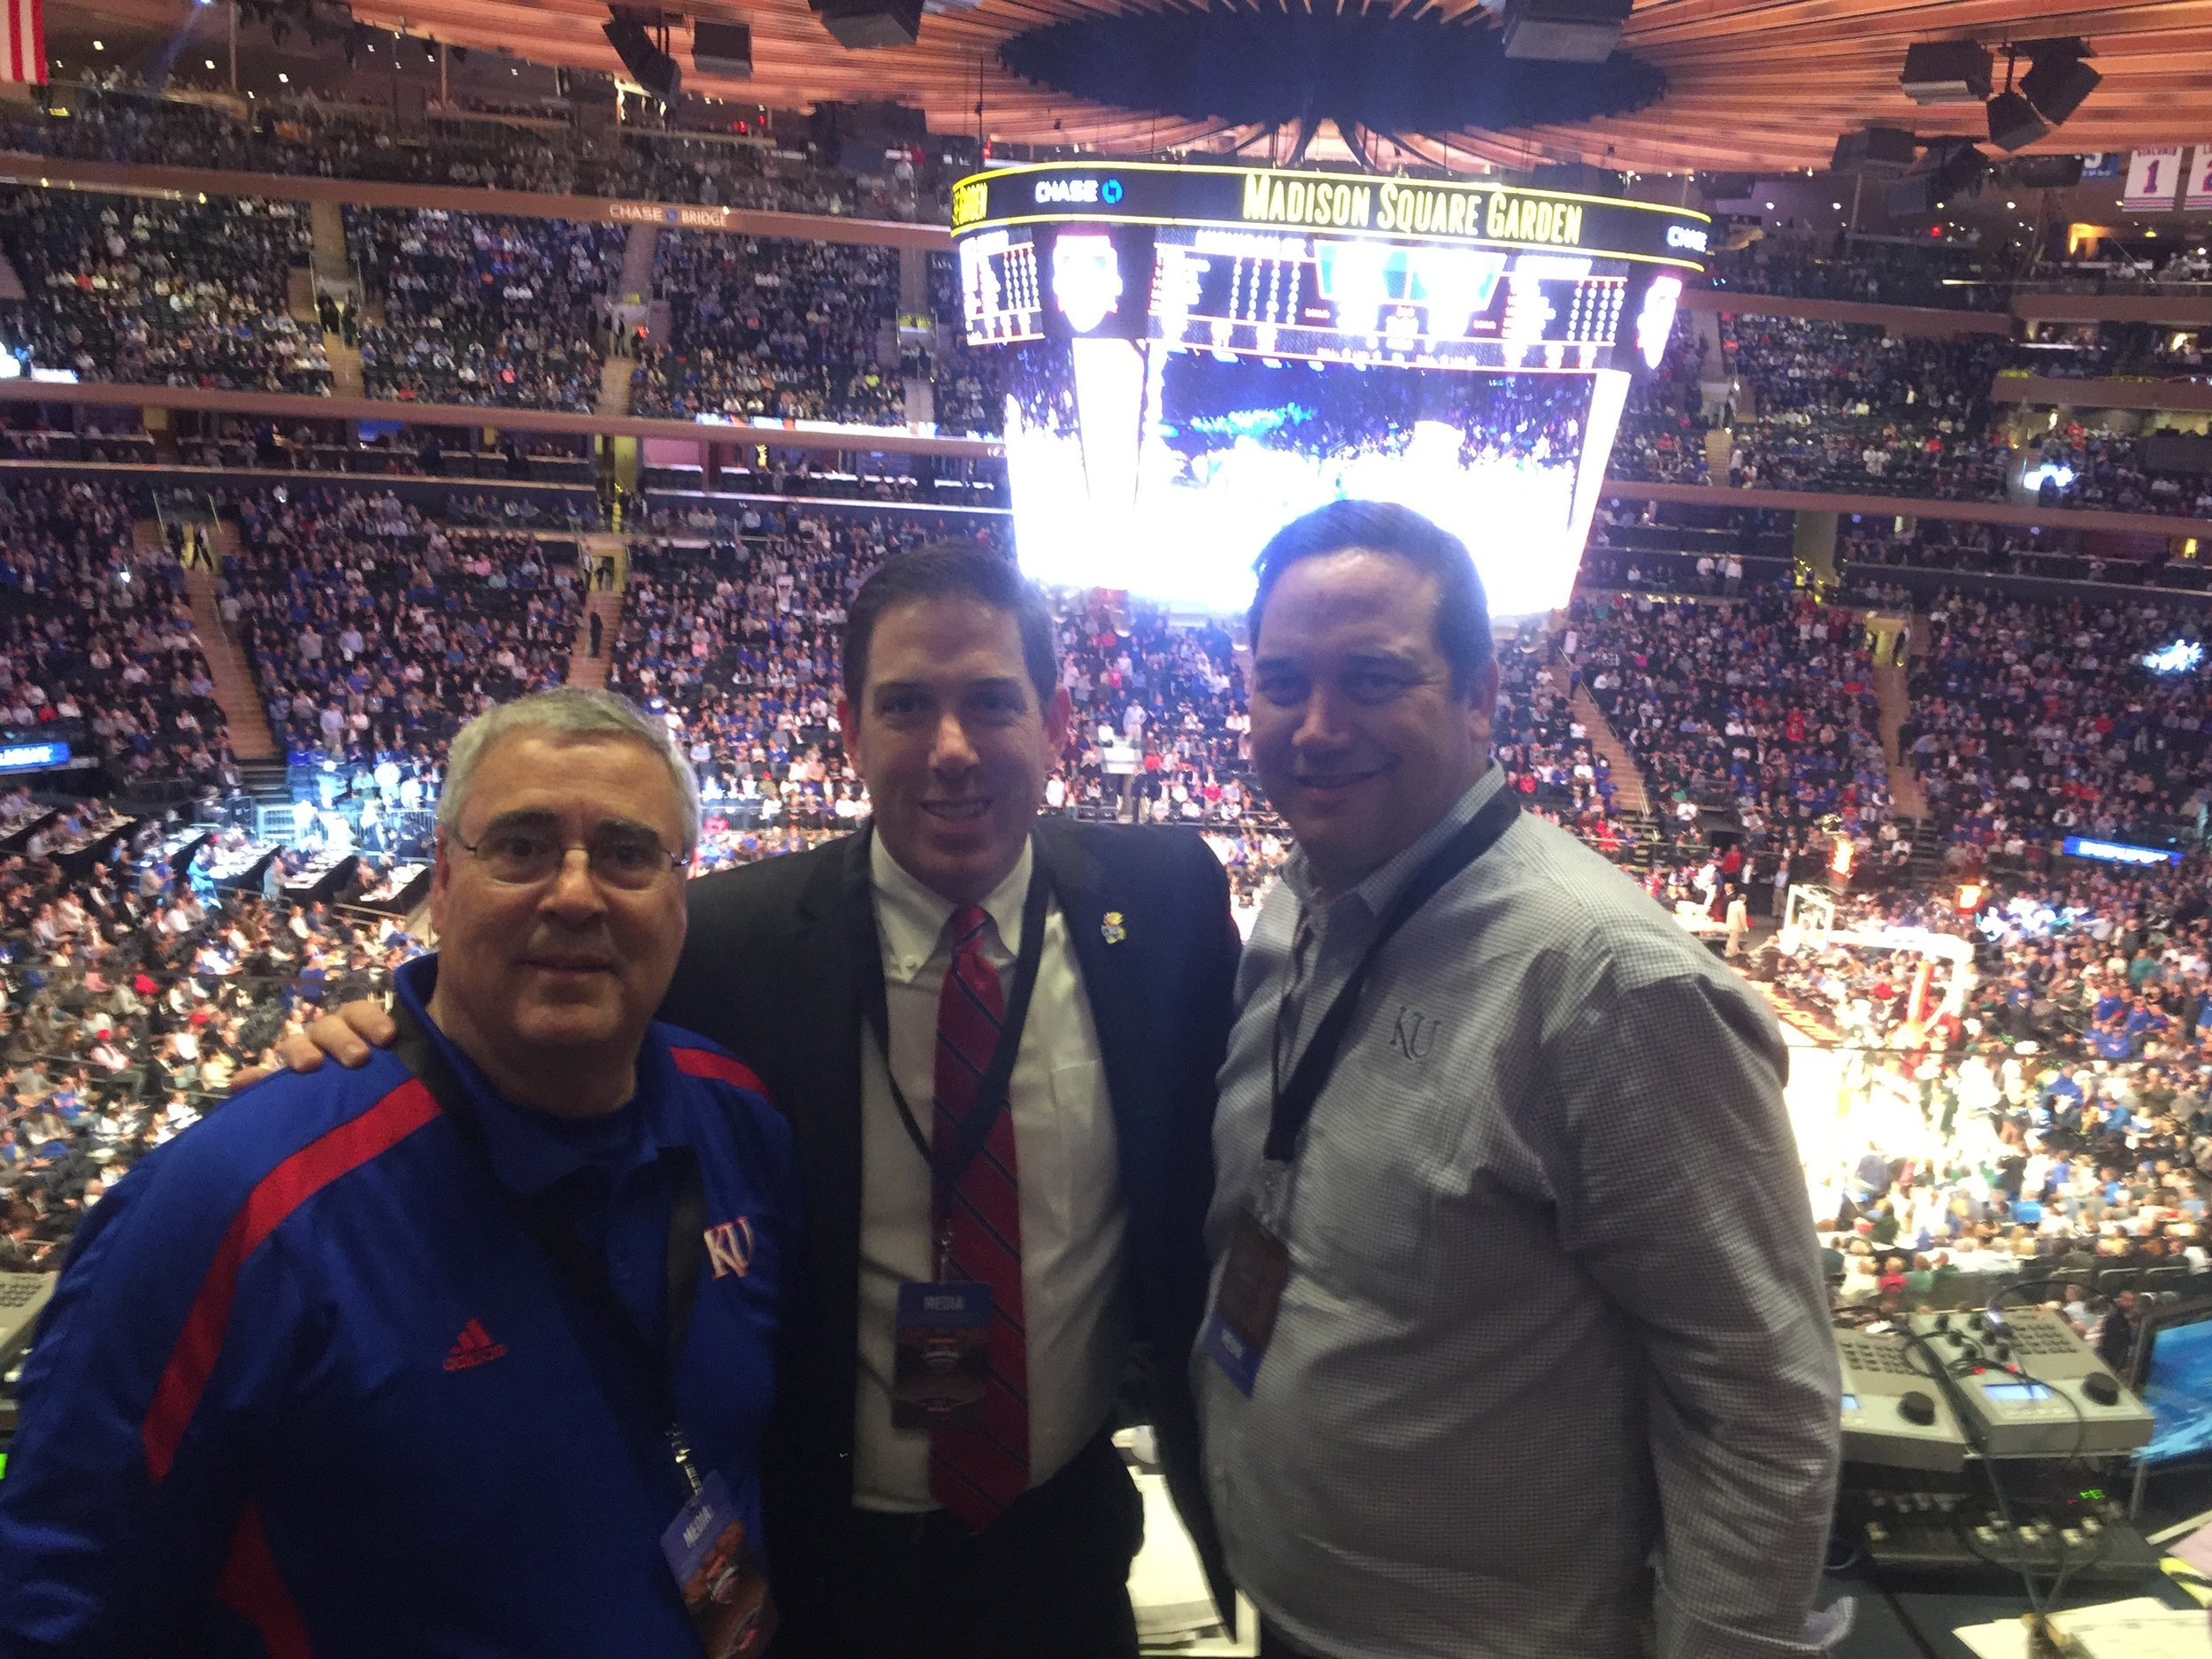 From left: Bob Newton, producer/engineer of Jayhawk Radio Network, Brian Hanni and Greg Gurley, men's basketball color analyst for Jayhawk Radio Network and former KU basketball guard 1992-95) posed for a photo before the 2016 Champions Classic at Madison Square Garden in New York.